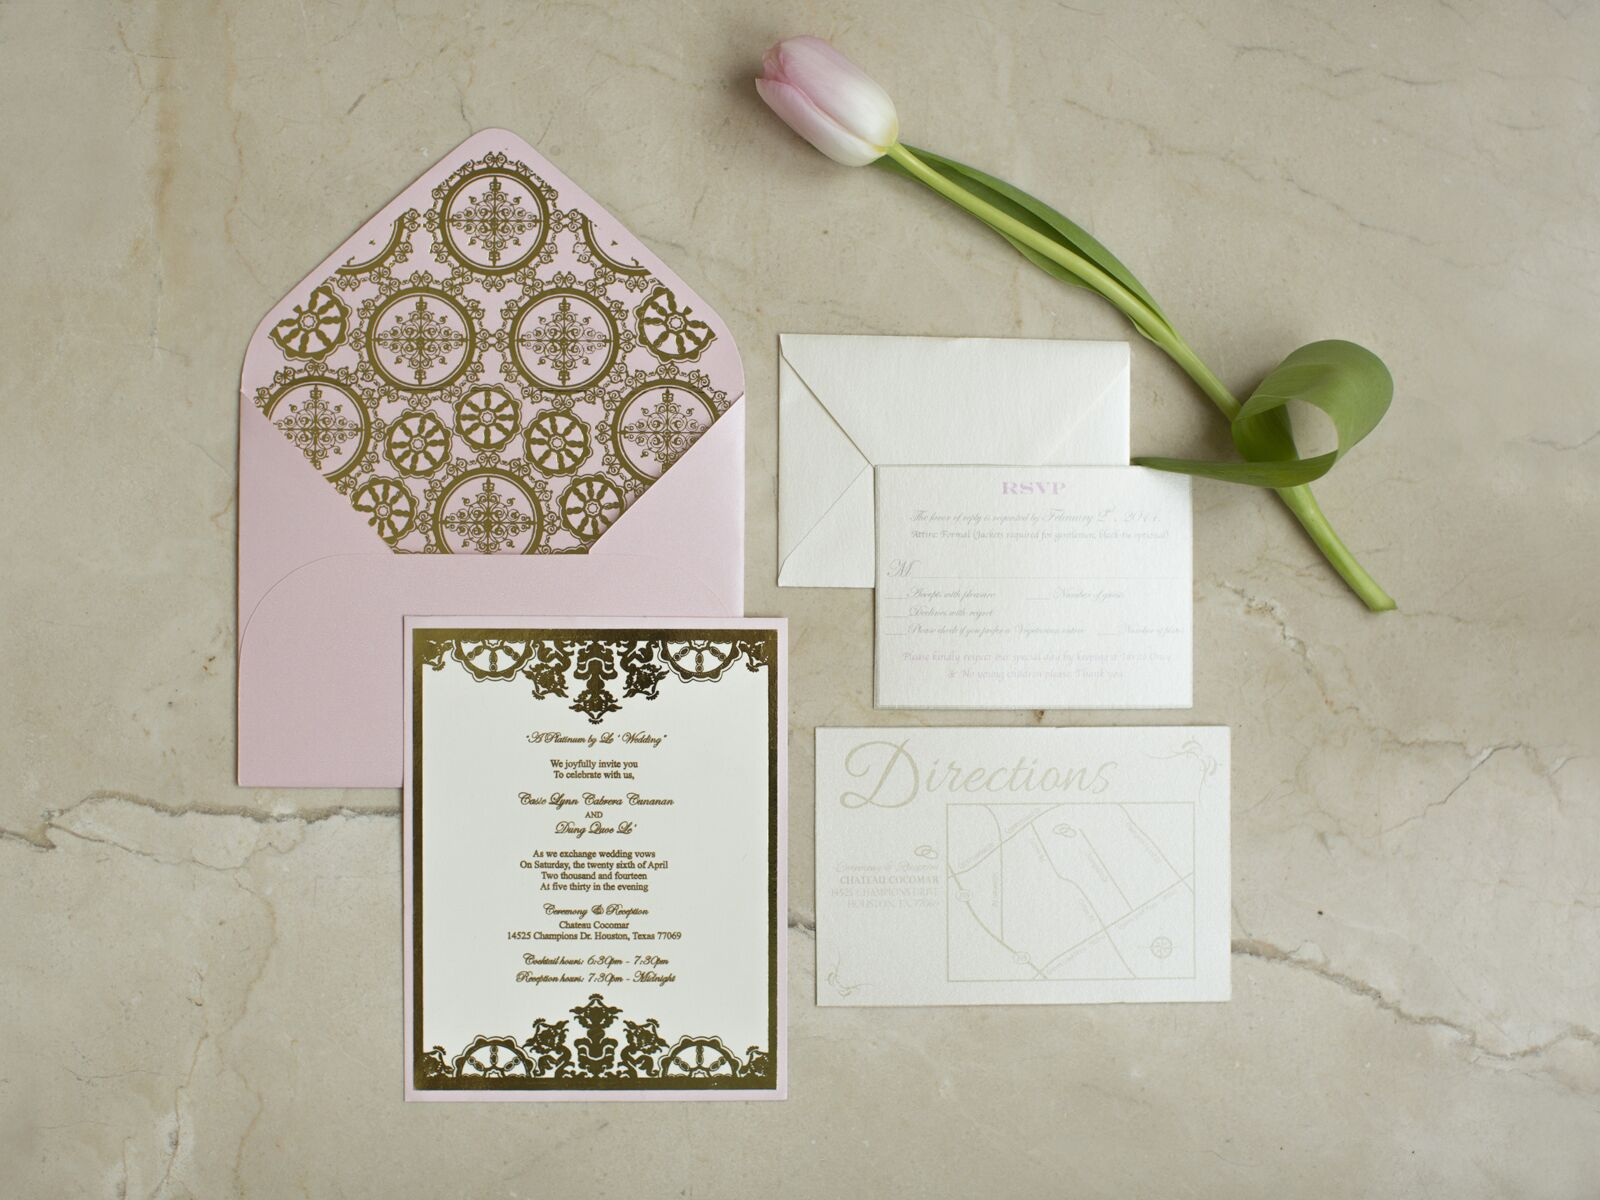 11 Steps To Customizing Your Wedding Invitations And